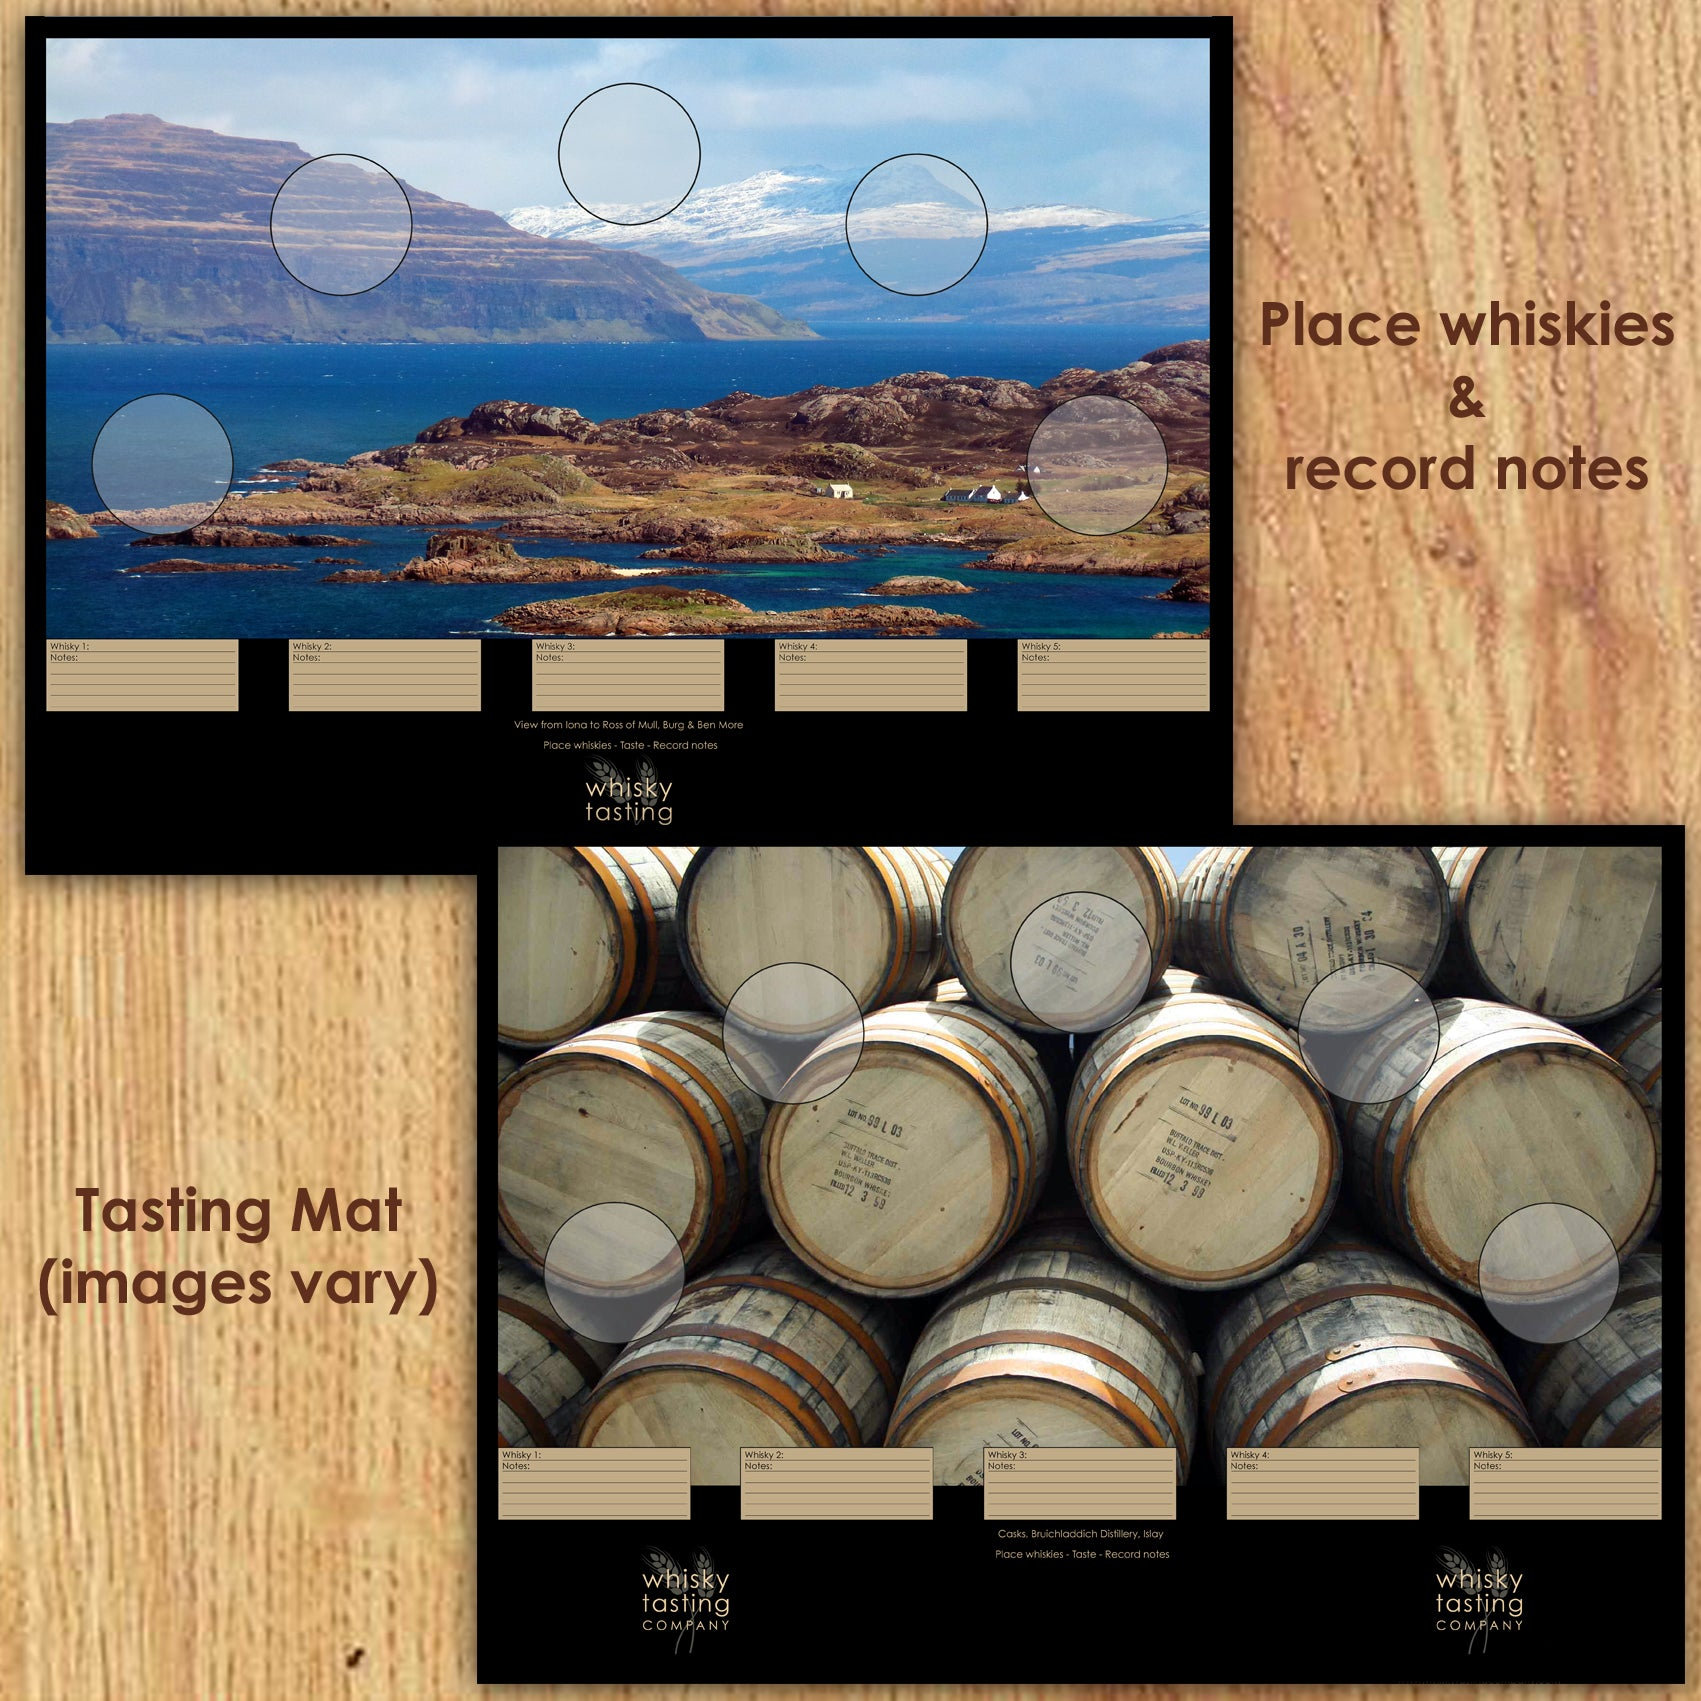 Whisky tasting mat for 5 bottle whisky gift set